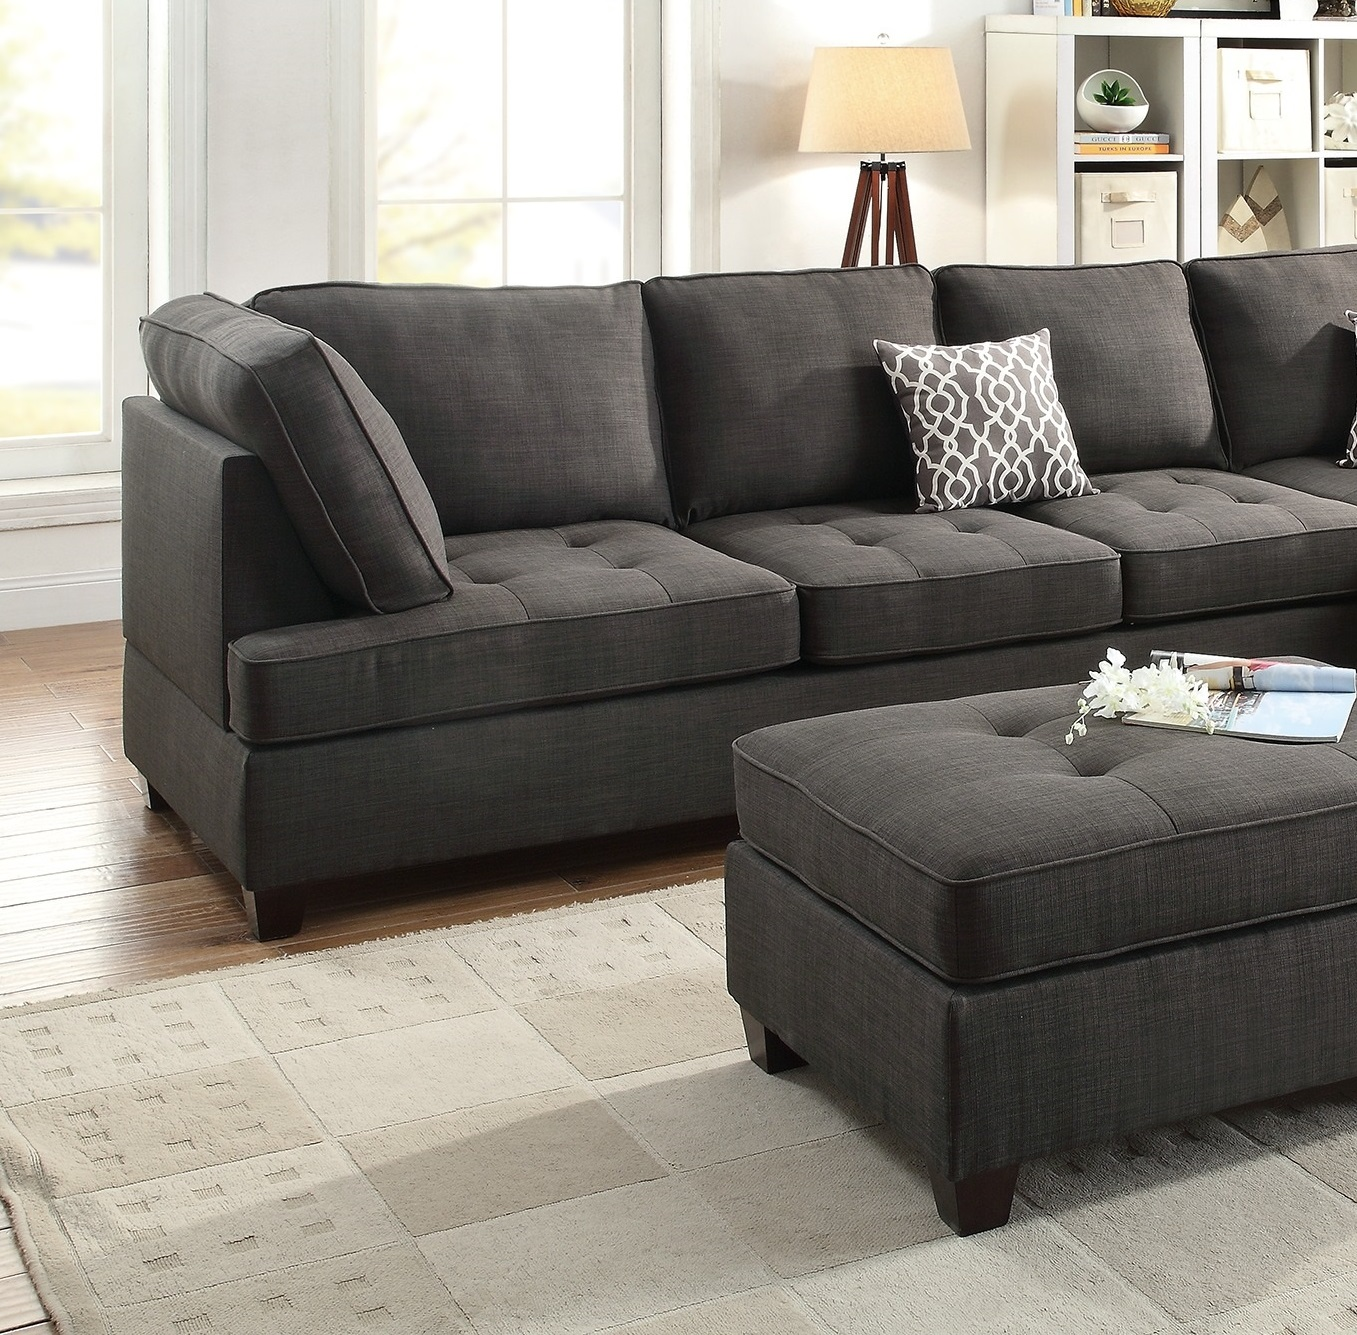 Black Sectional Sofa Chaise Poundex F6988 Hot Sectionals